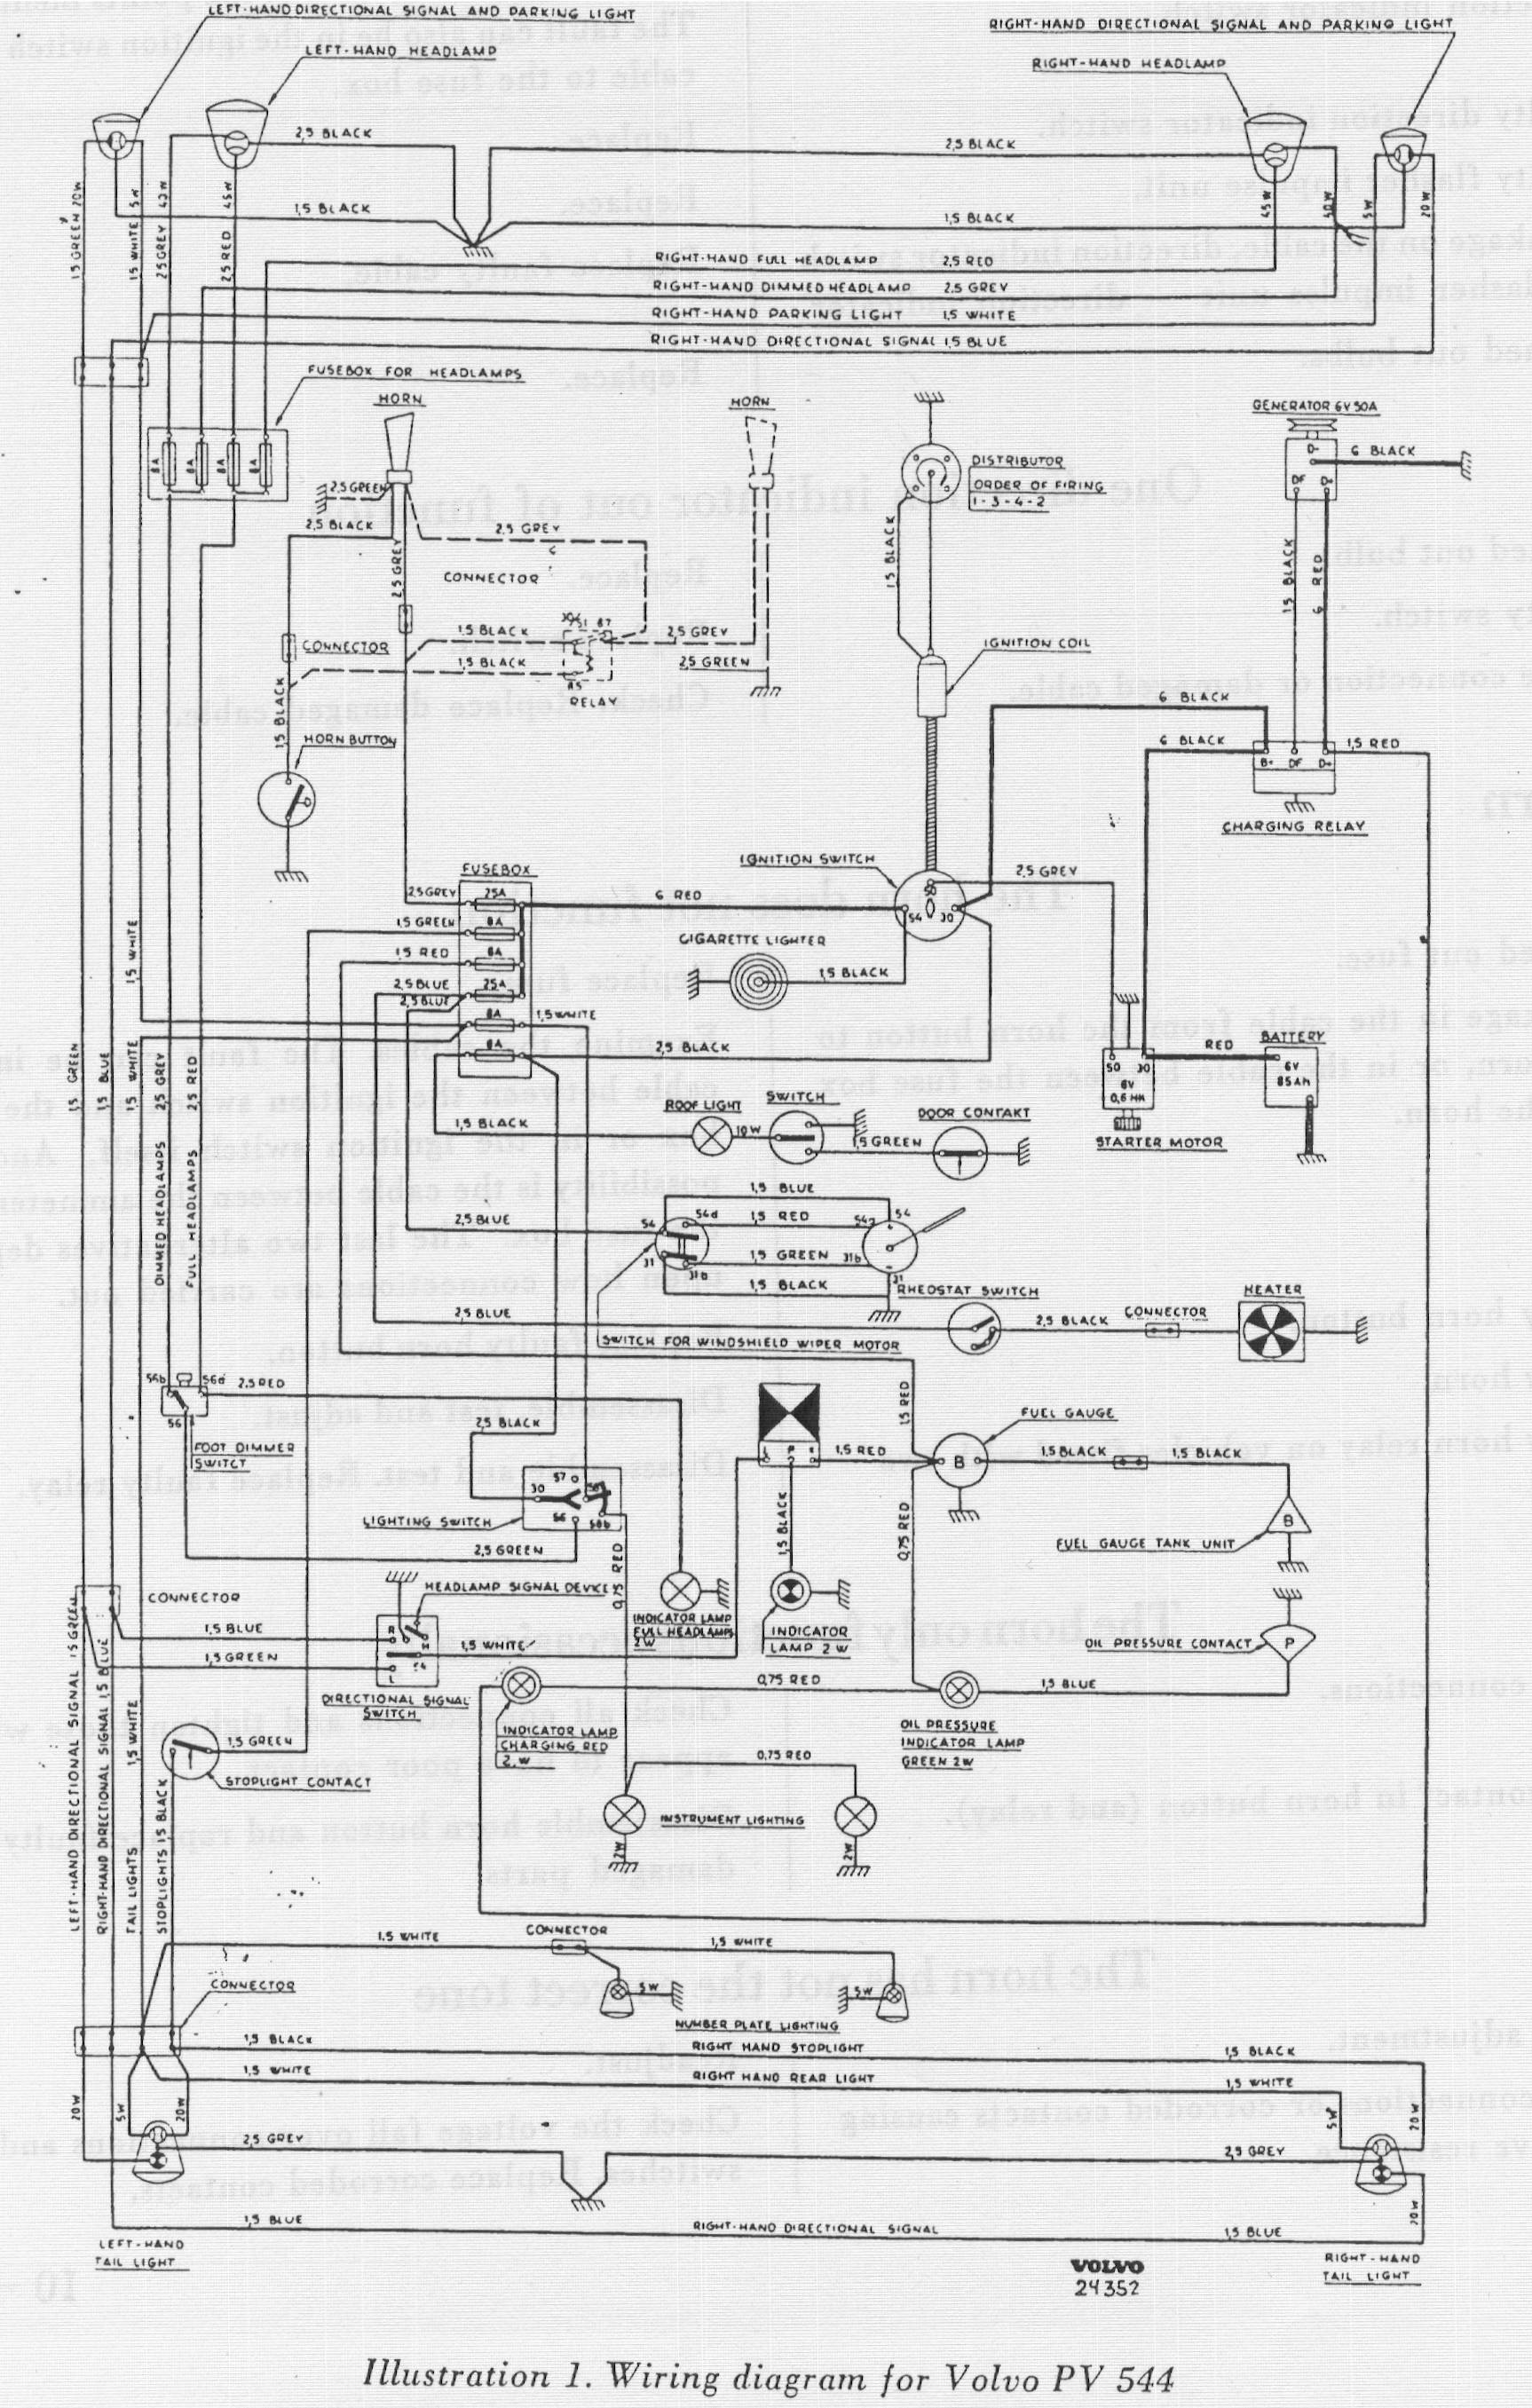 Volvo wiring diagrams pdf projectfilecloud